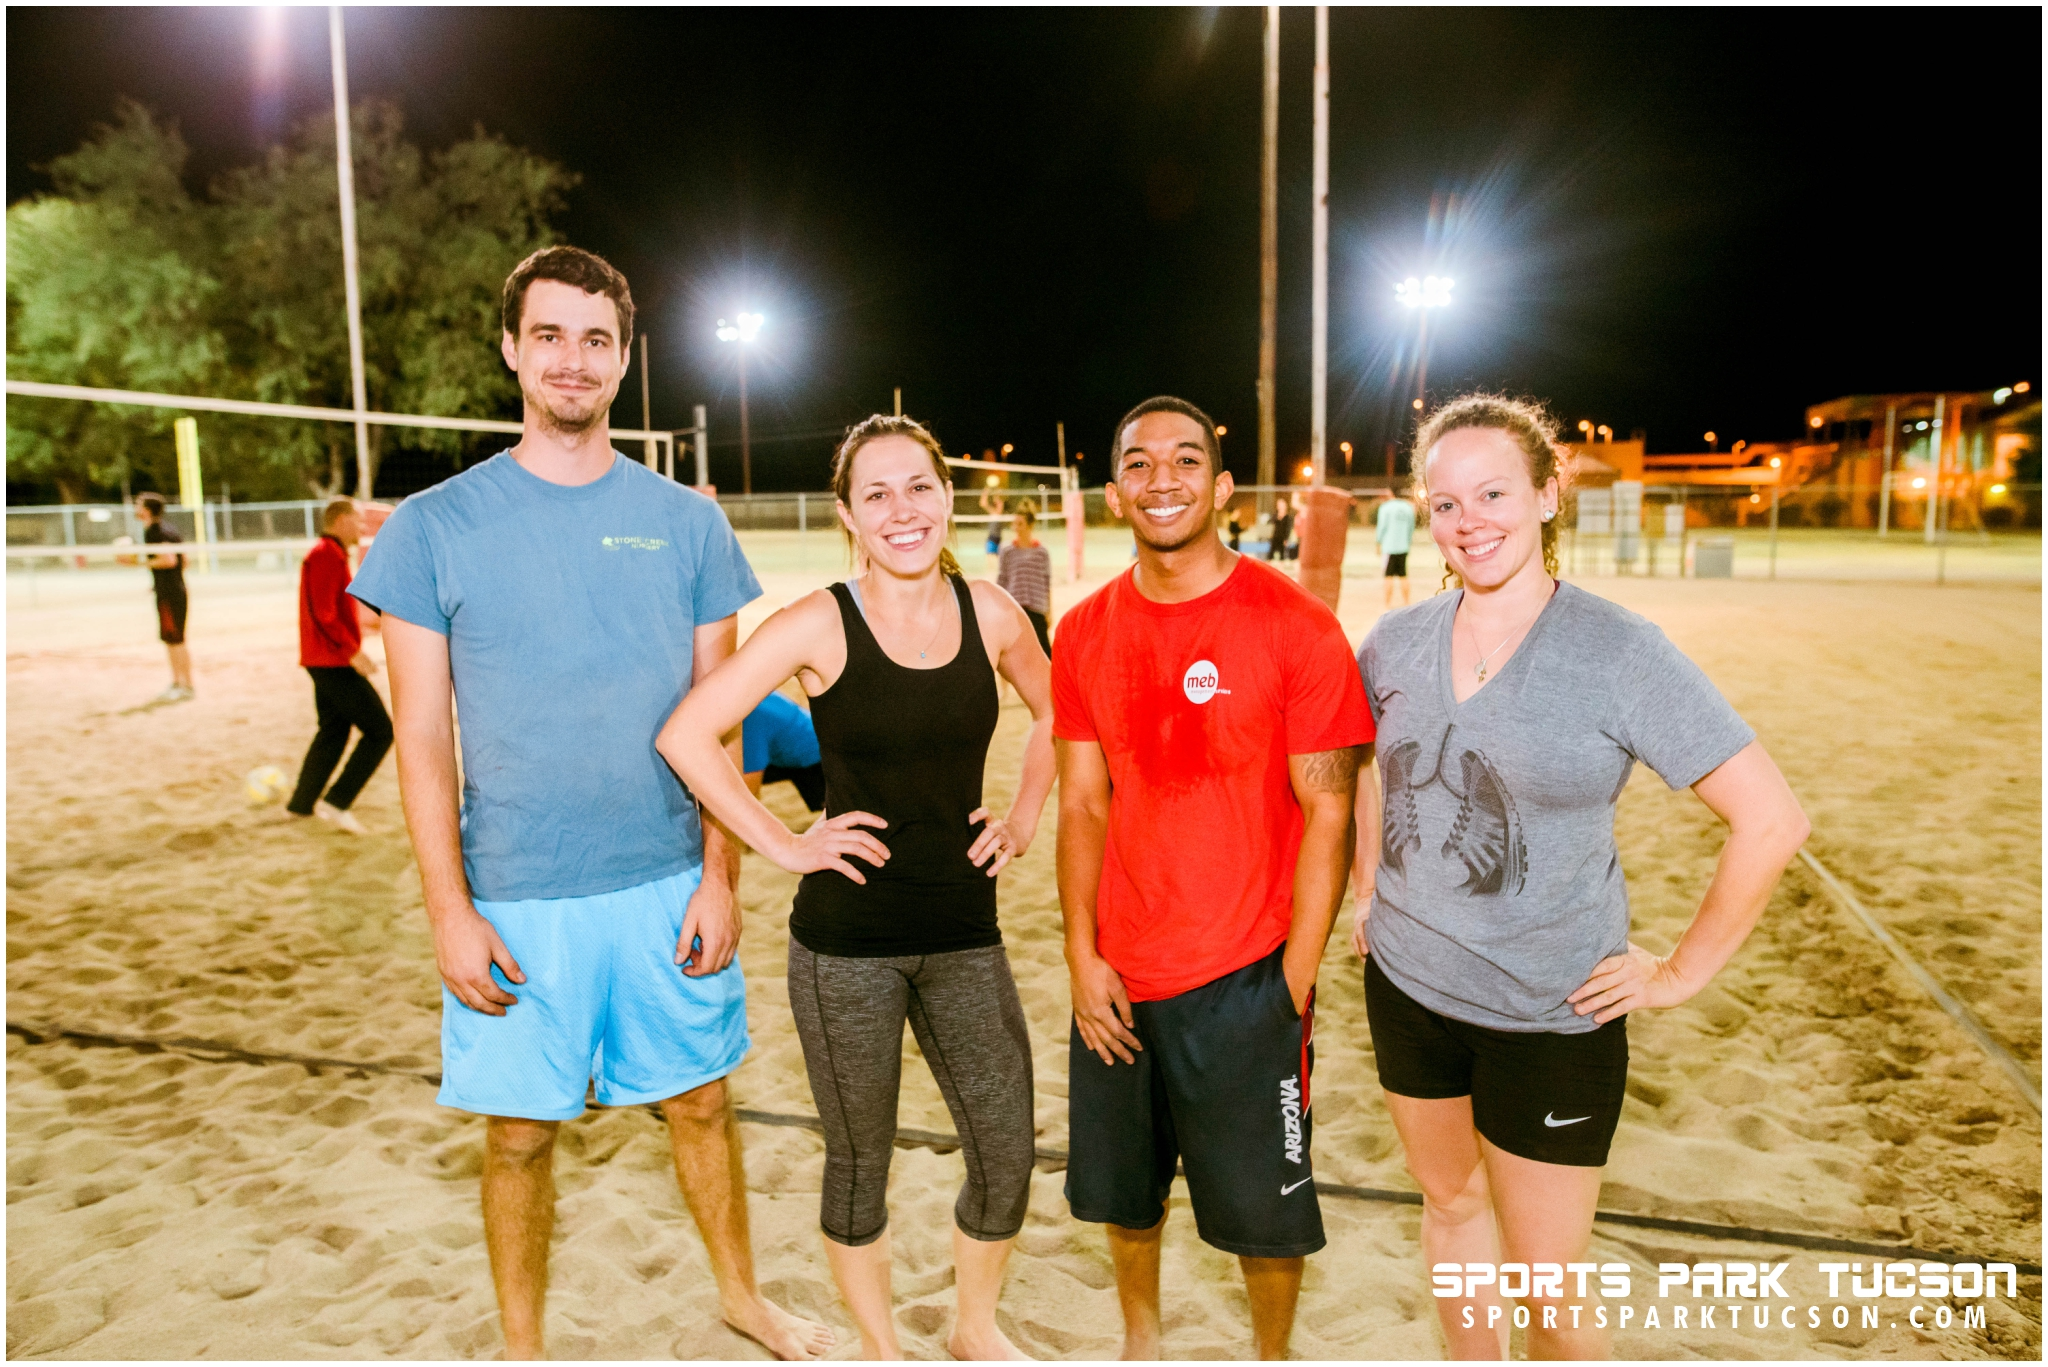 Volleyball Wed Co-ed 4 v 4 - Silver, Team: Orville ready-blocker